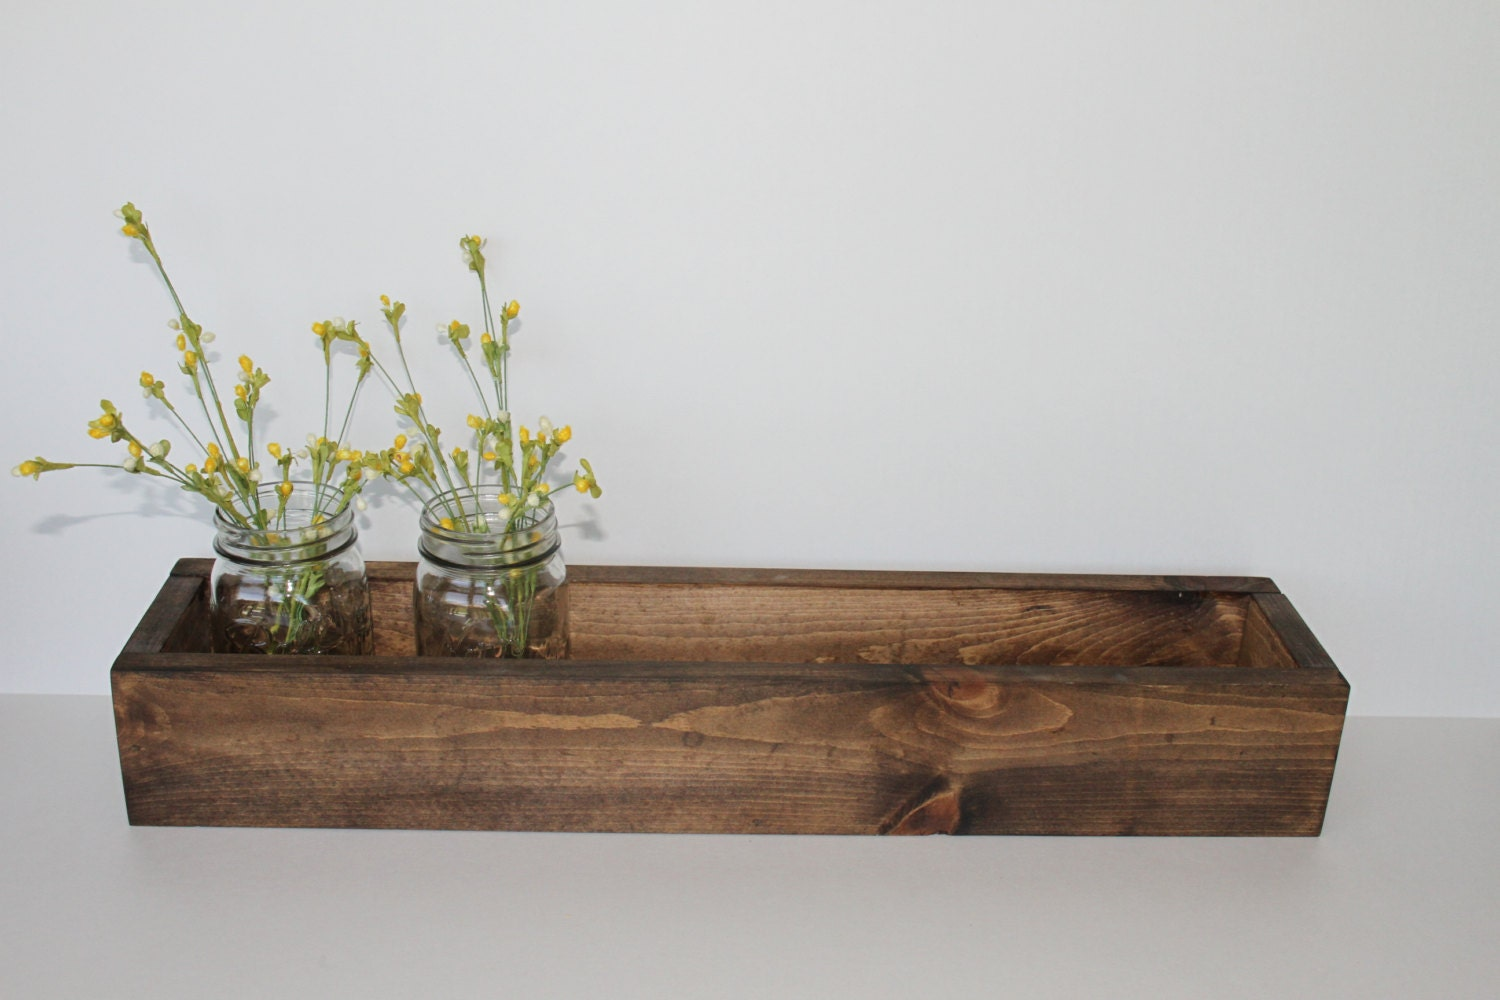 24x5x35 Wood Box Rustic Planter